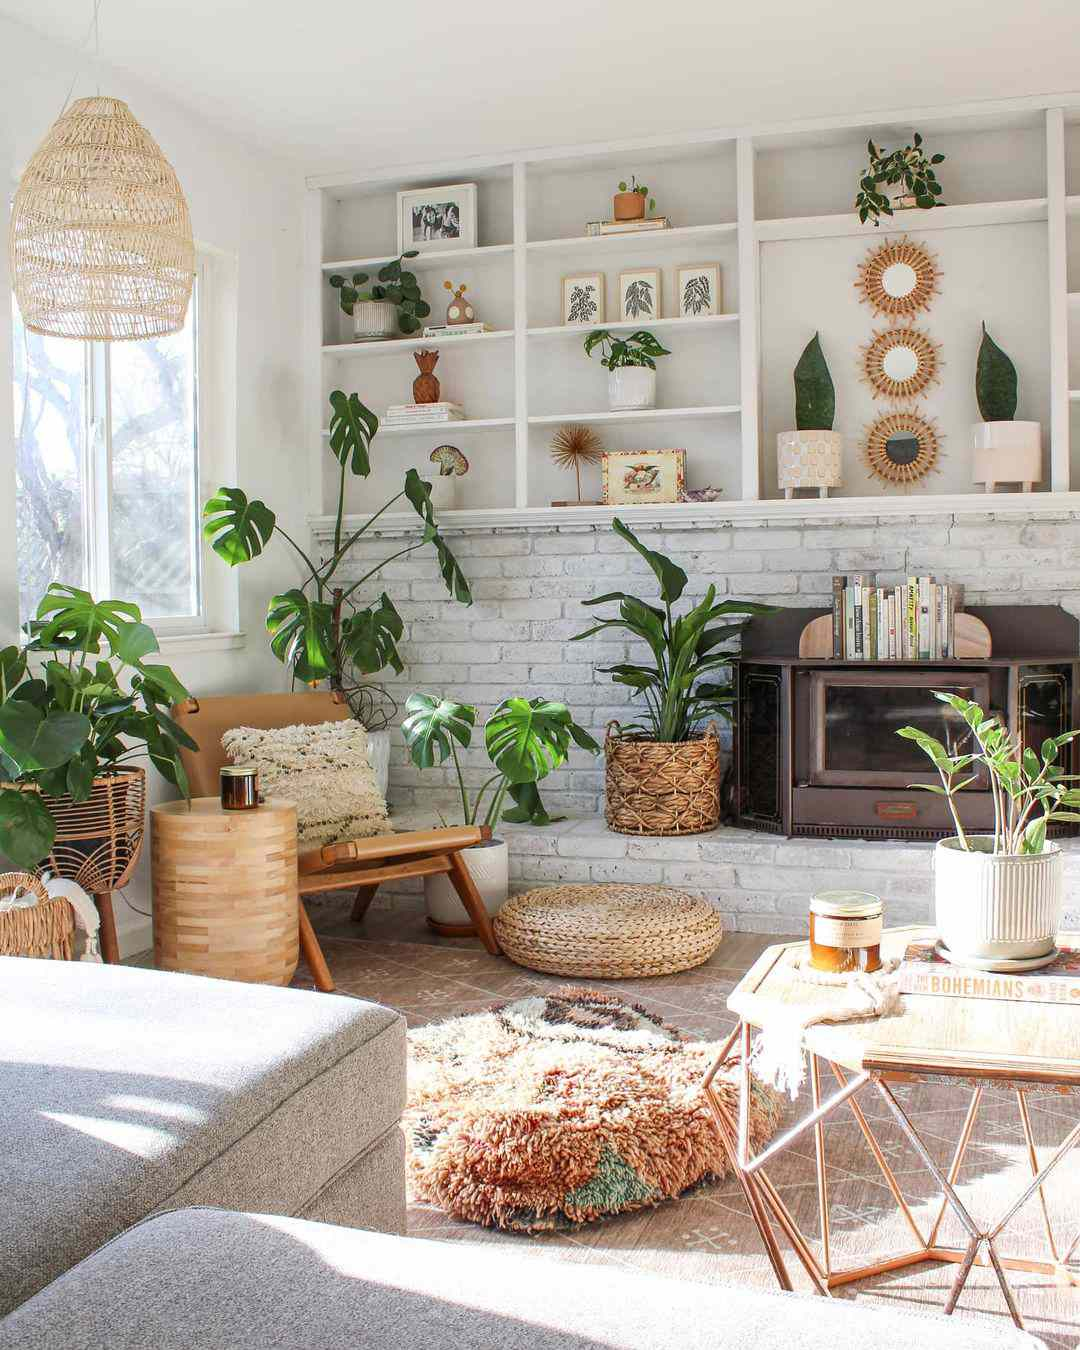 Tropical boho living room filled with plants.